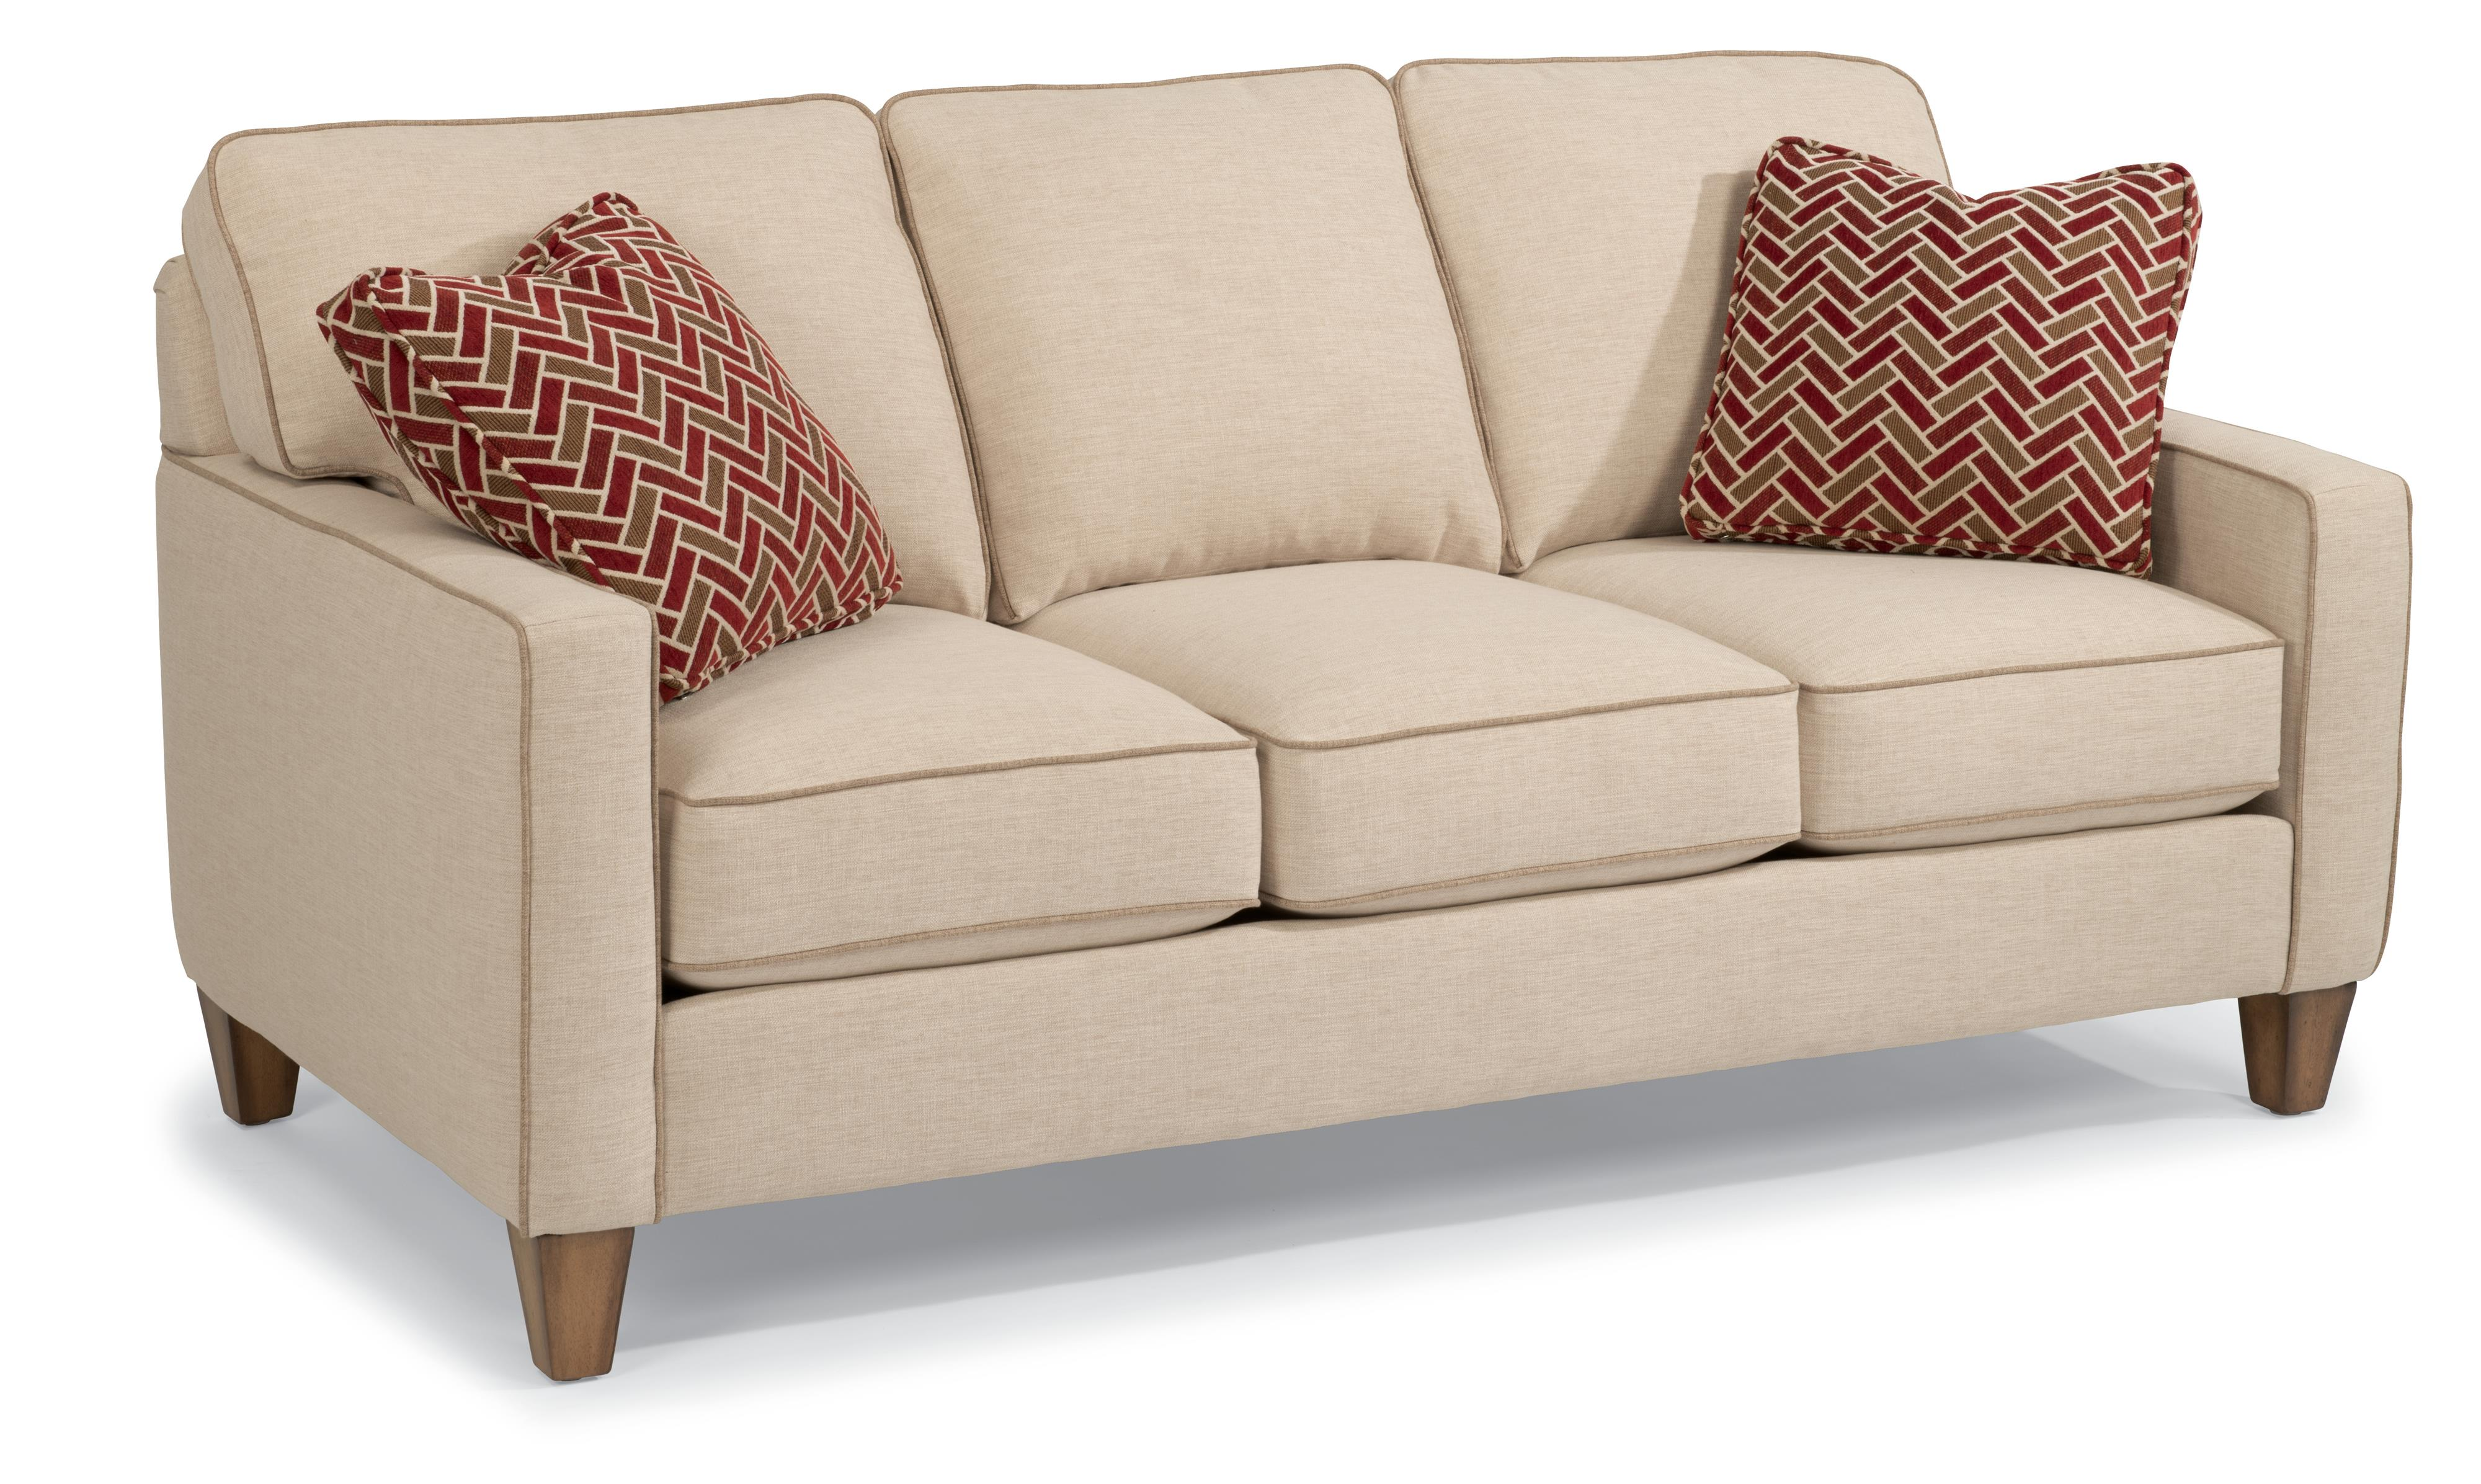 Sofa Welt Flexsteel Macleran Stationary Sofa With Reversible Seat